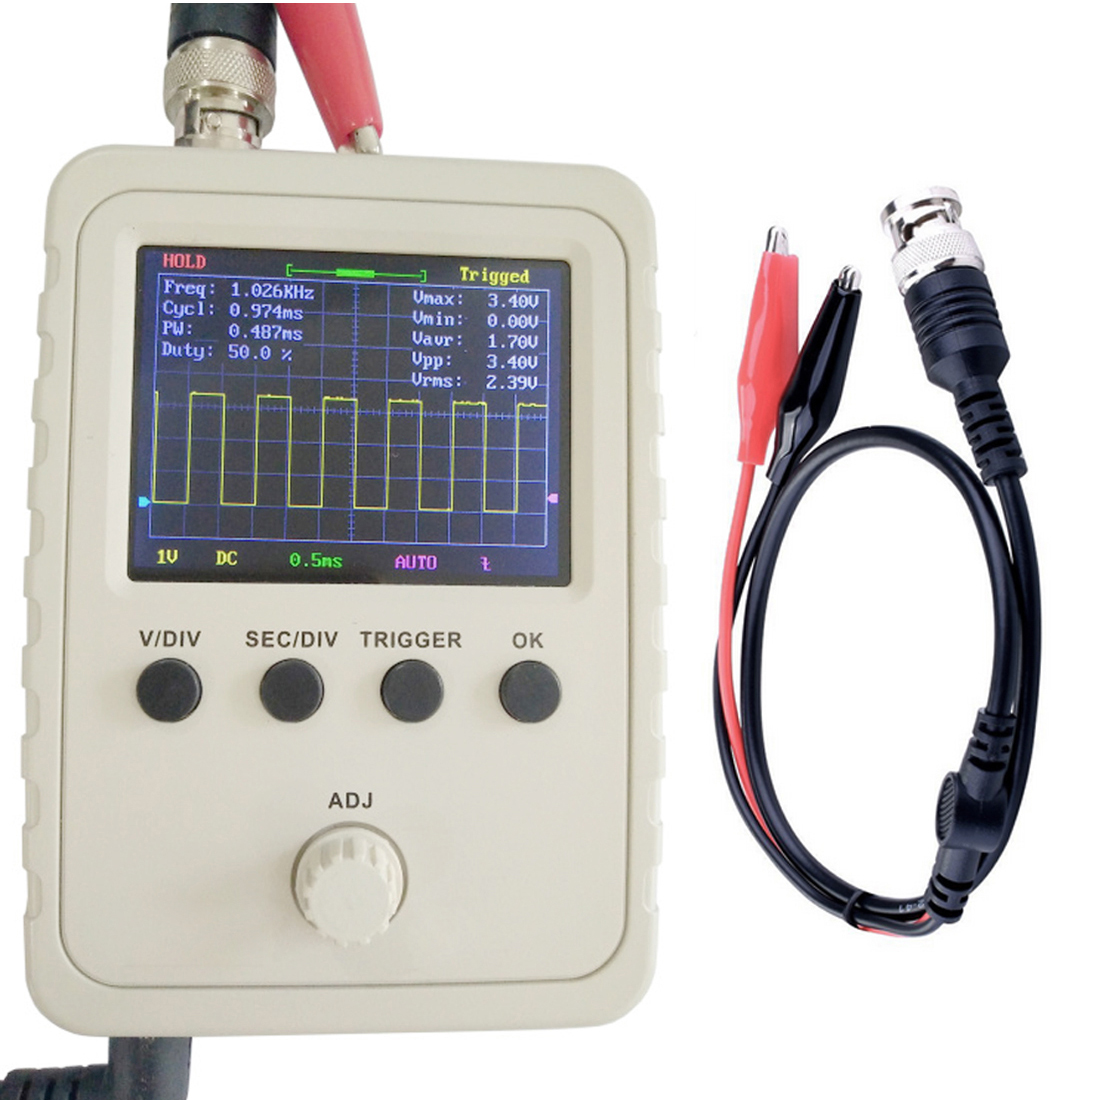 Fully Mounted Digital Oscilloscope with 1MSa/s Sampling Rate and 200KHz Bandwidth